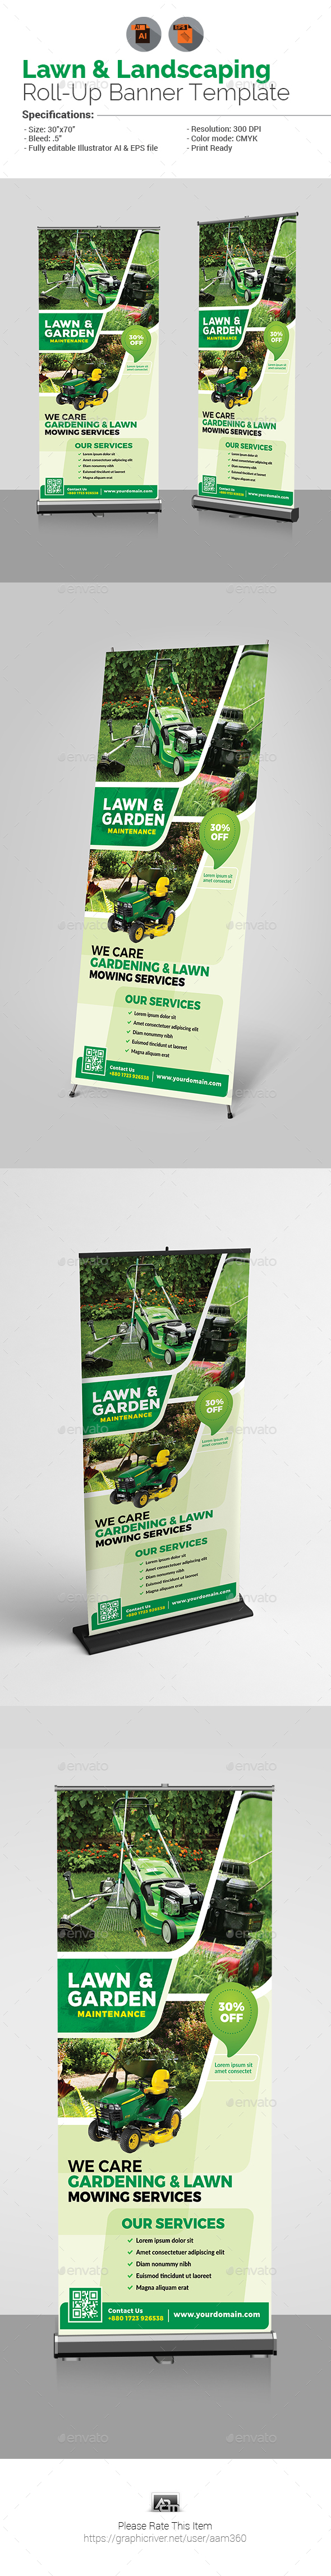 Lawn & Landscaping Roll-Up Banner - Signage Print Templates